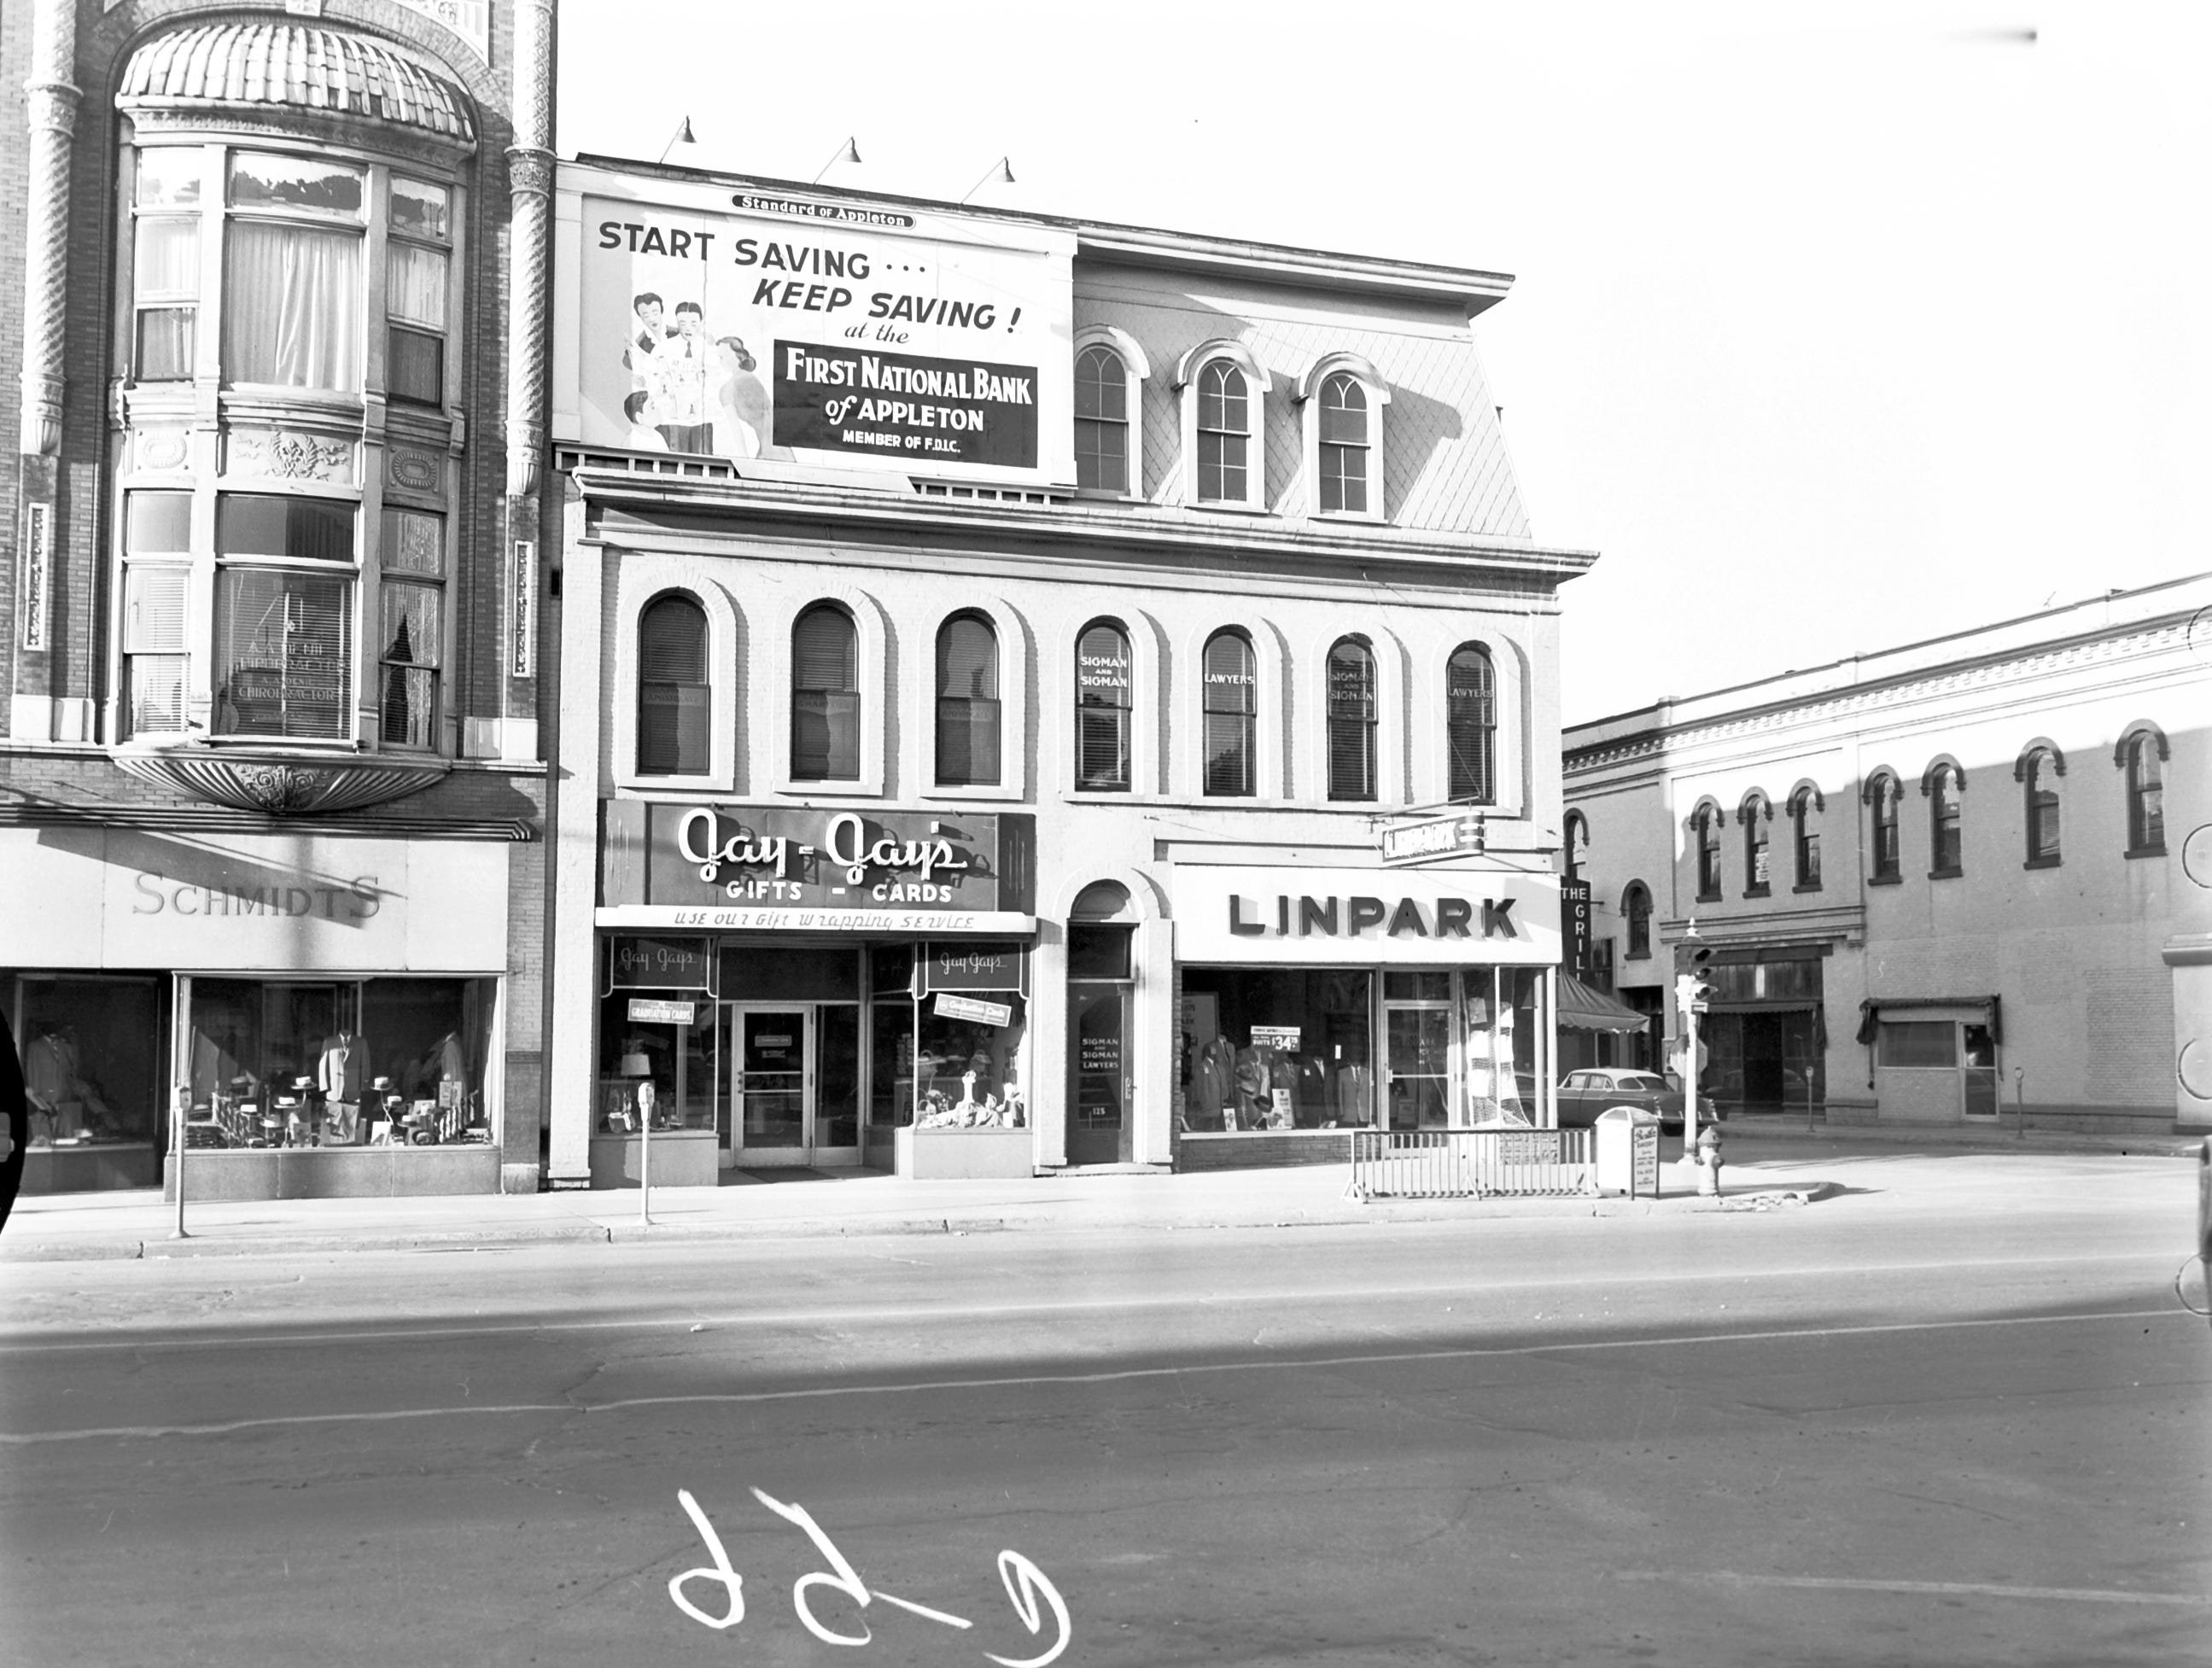 1957 Downtown Appleton. 100 West block on the south side of College Avenue: Matt Schmitt Men's. Jay-Jays. LinPark Clothing. Post-Crescent photo by staff.